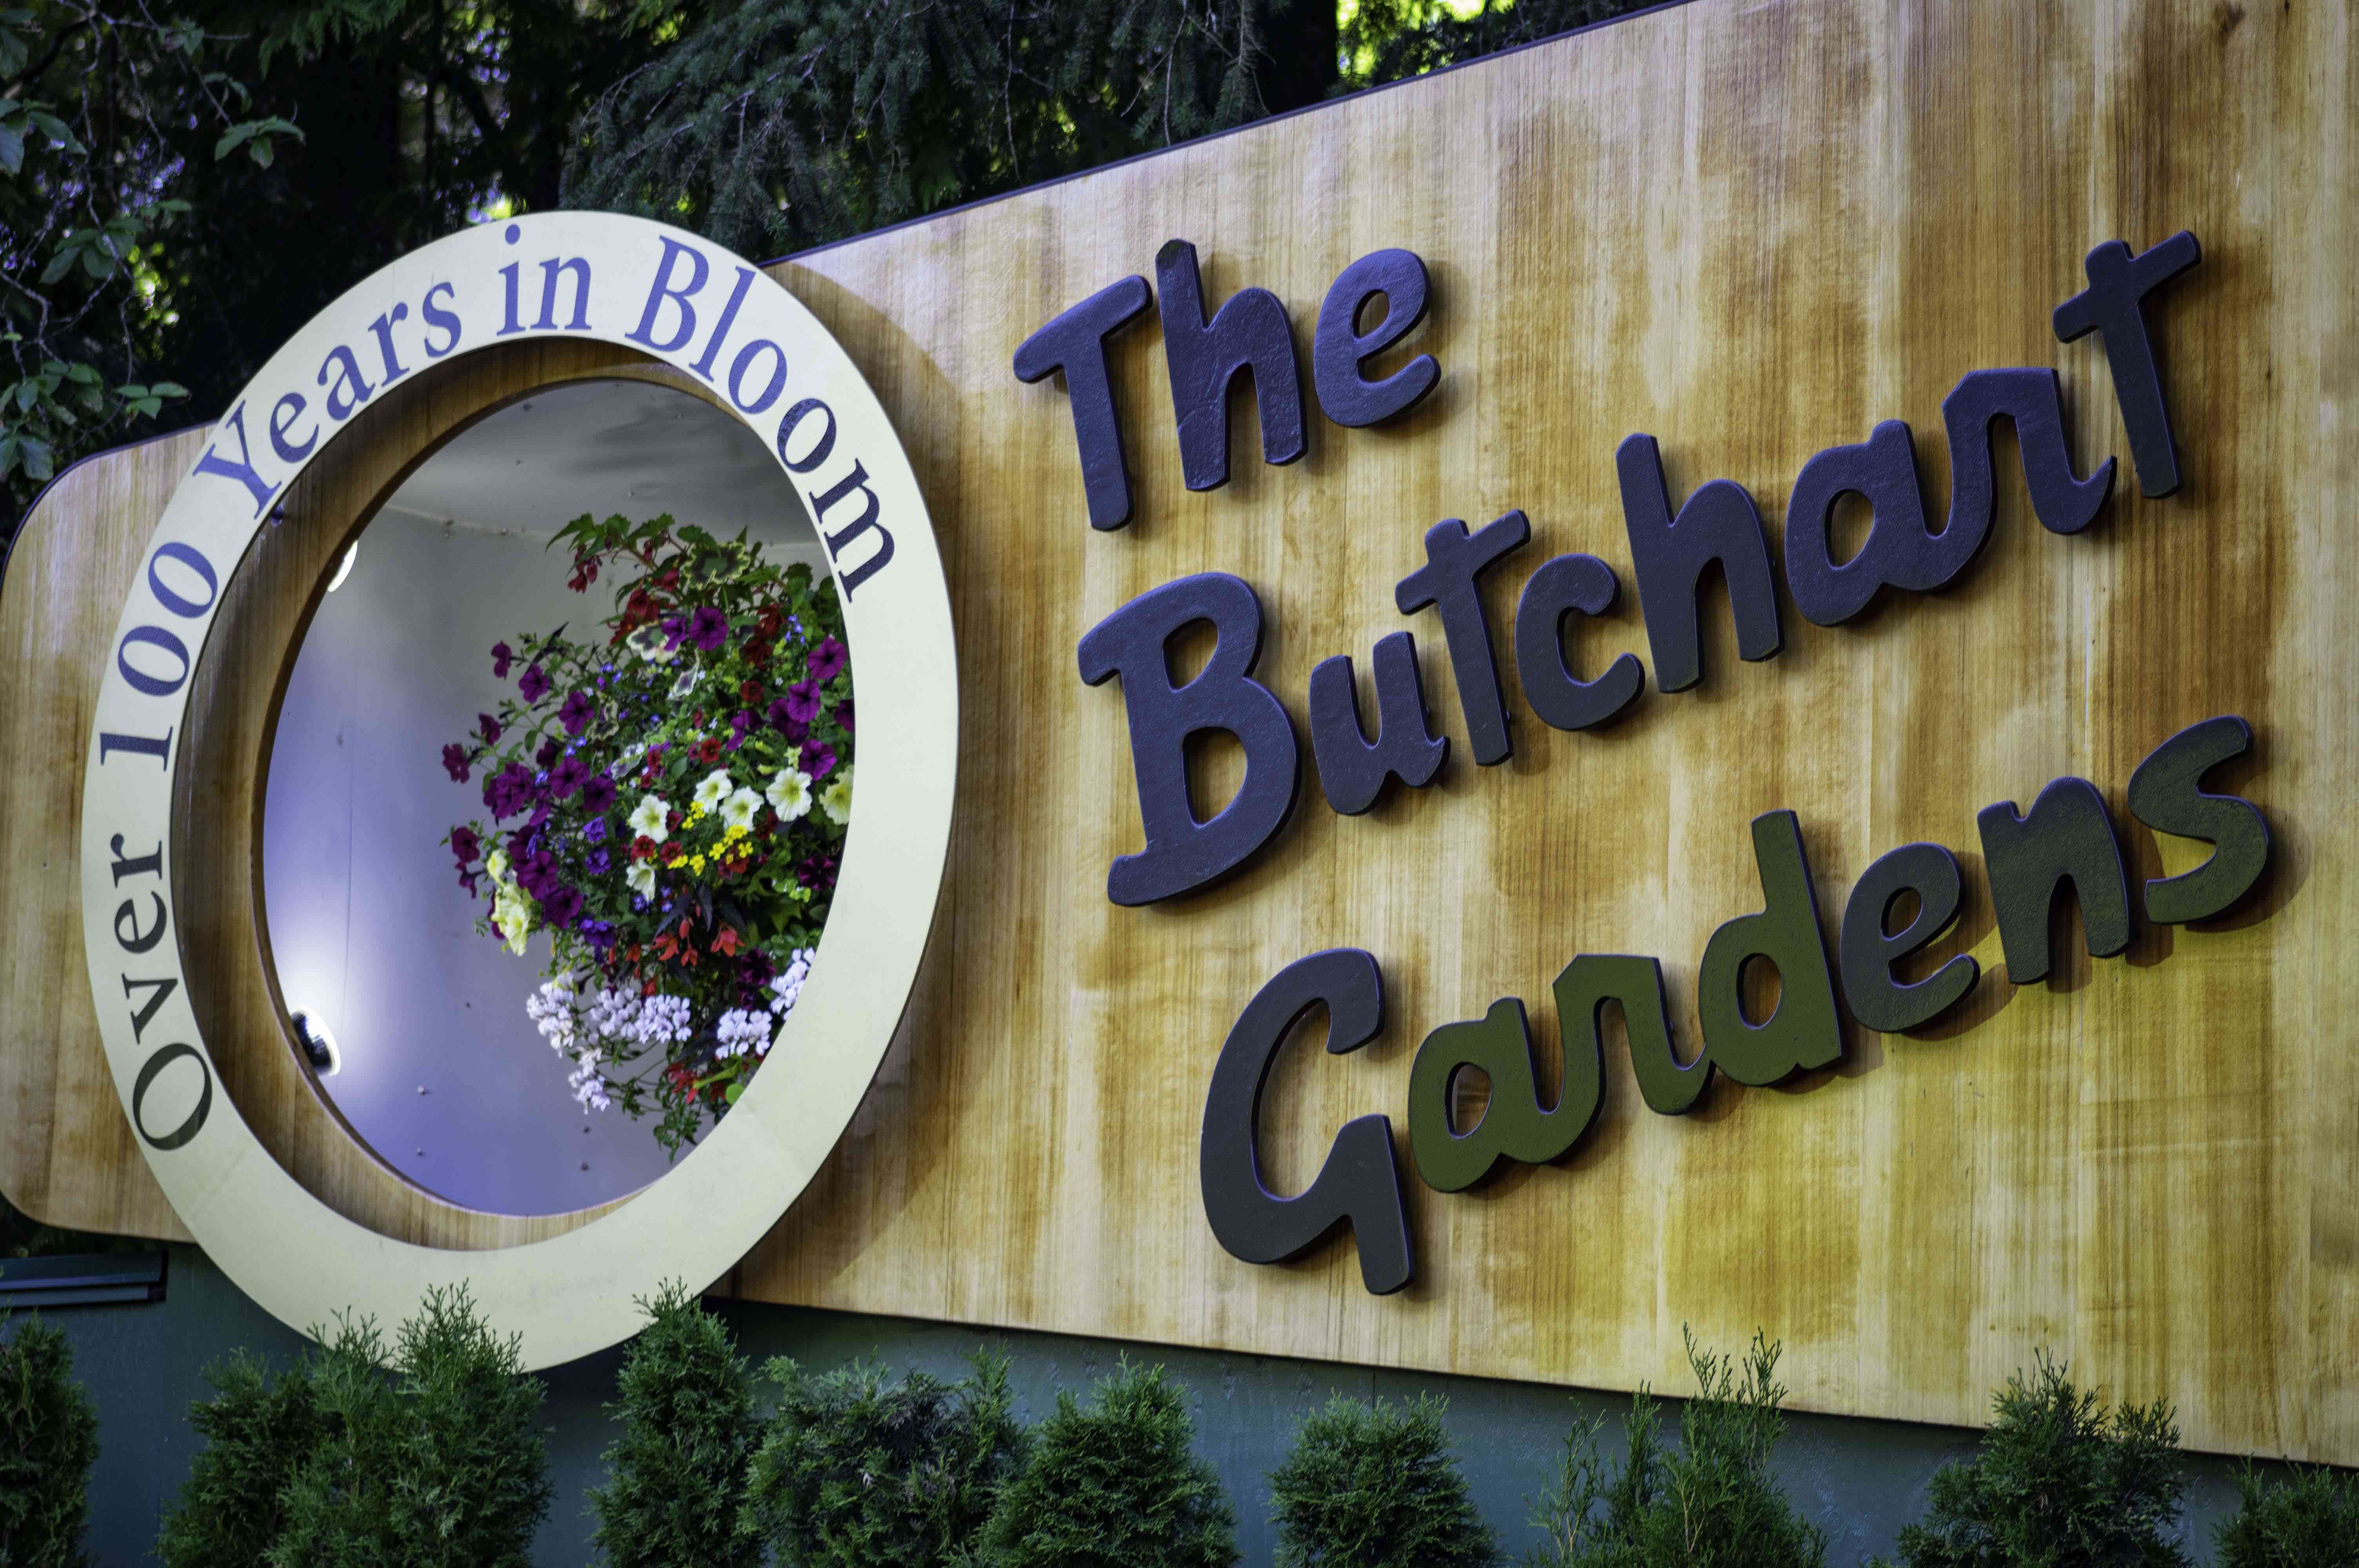 The Butchart Gardens Sign